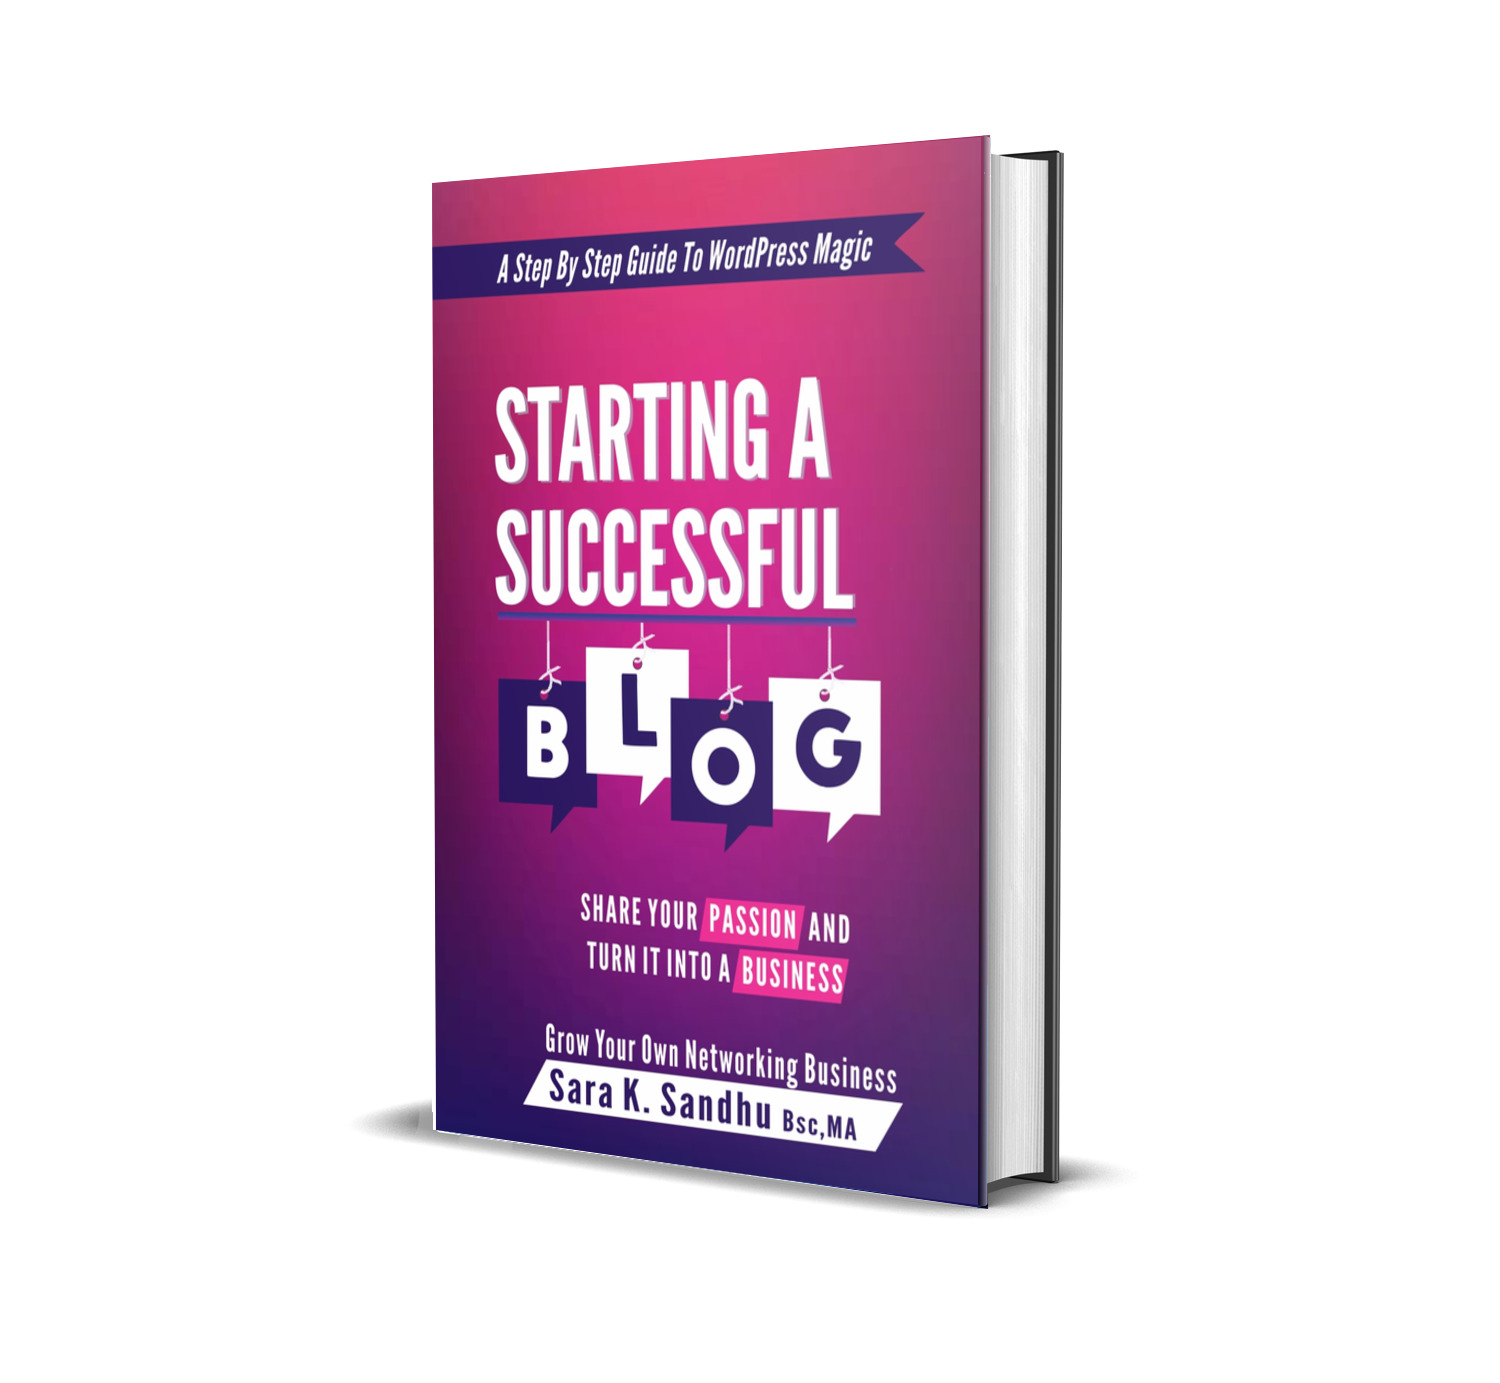 Starting A Successful Blog: Share Your Passion And Turn It Into A Business- Book